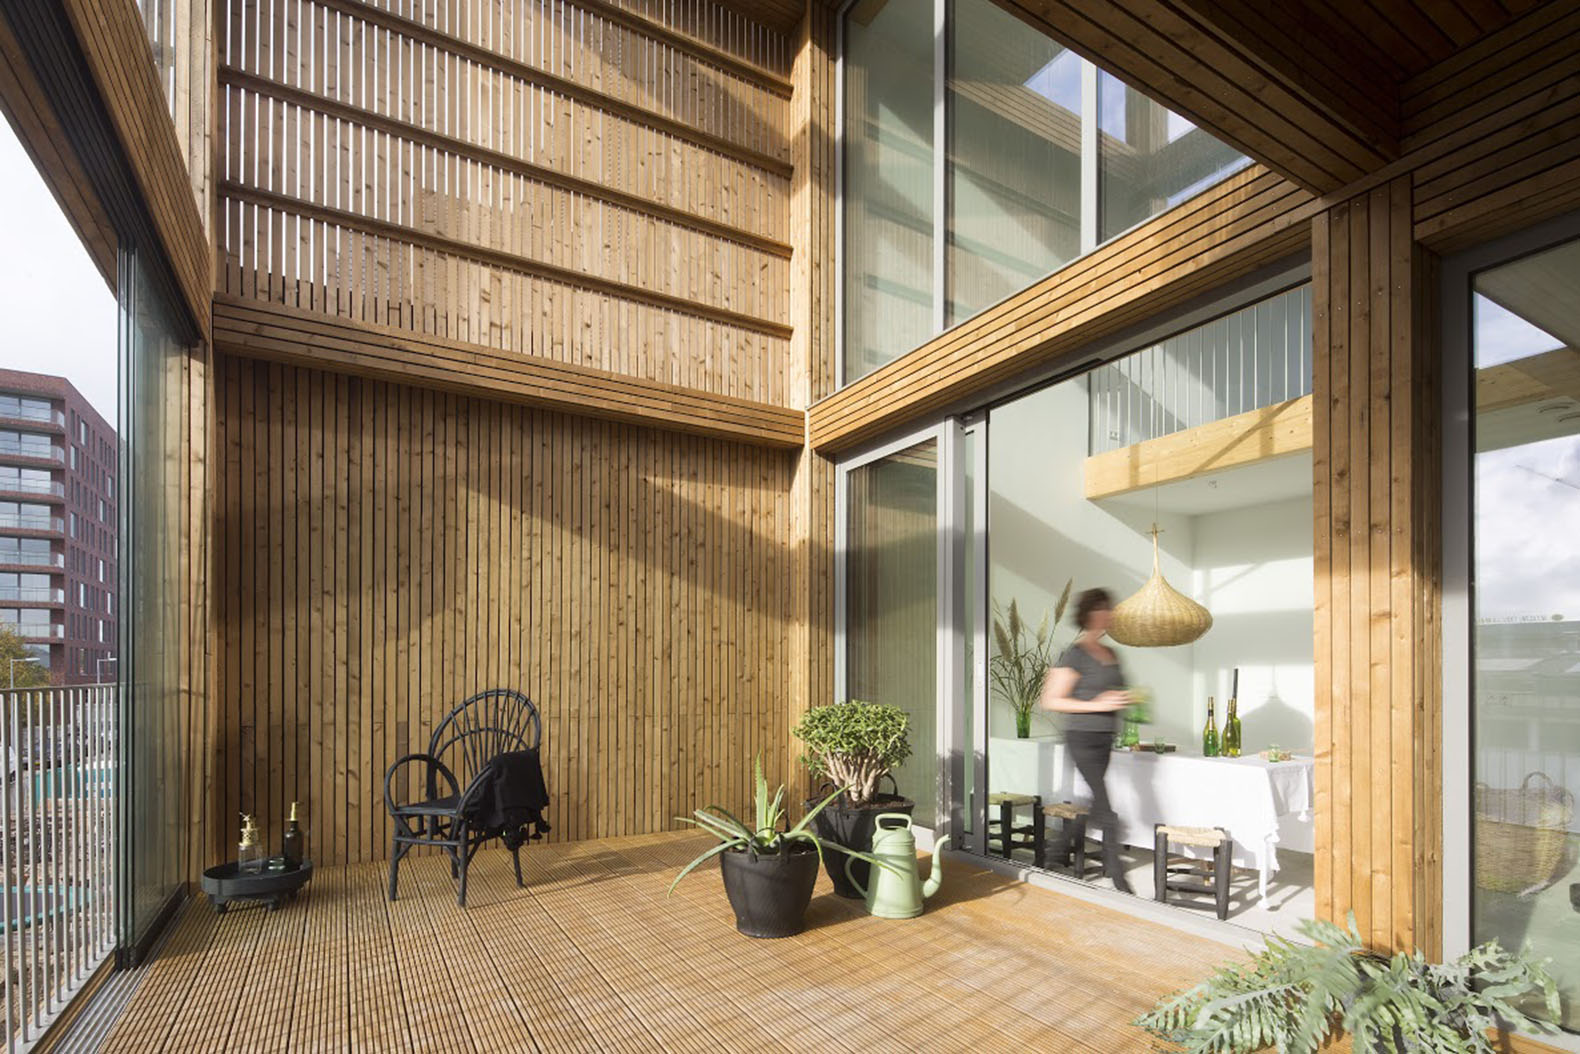 ANA architects, Houtlofts, Amsterdam, wooden structure, prefab housing,  energy-efficient